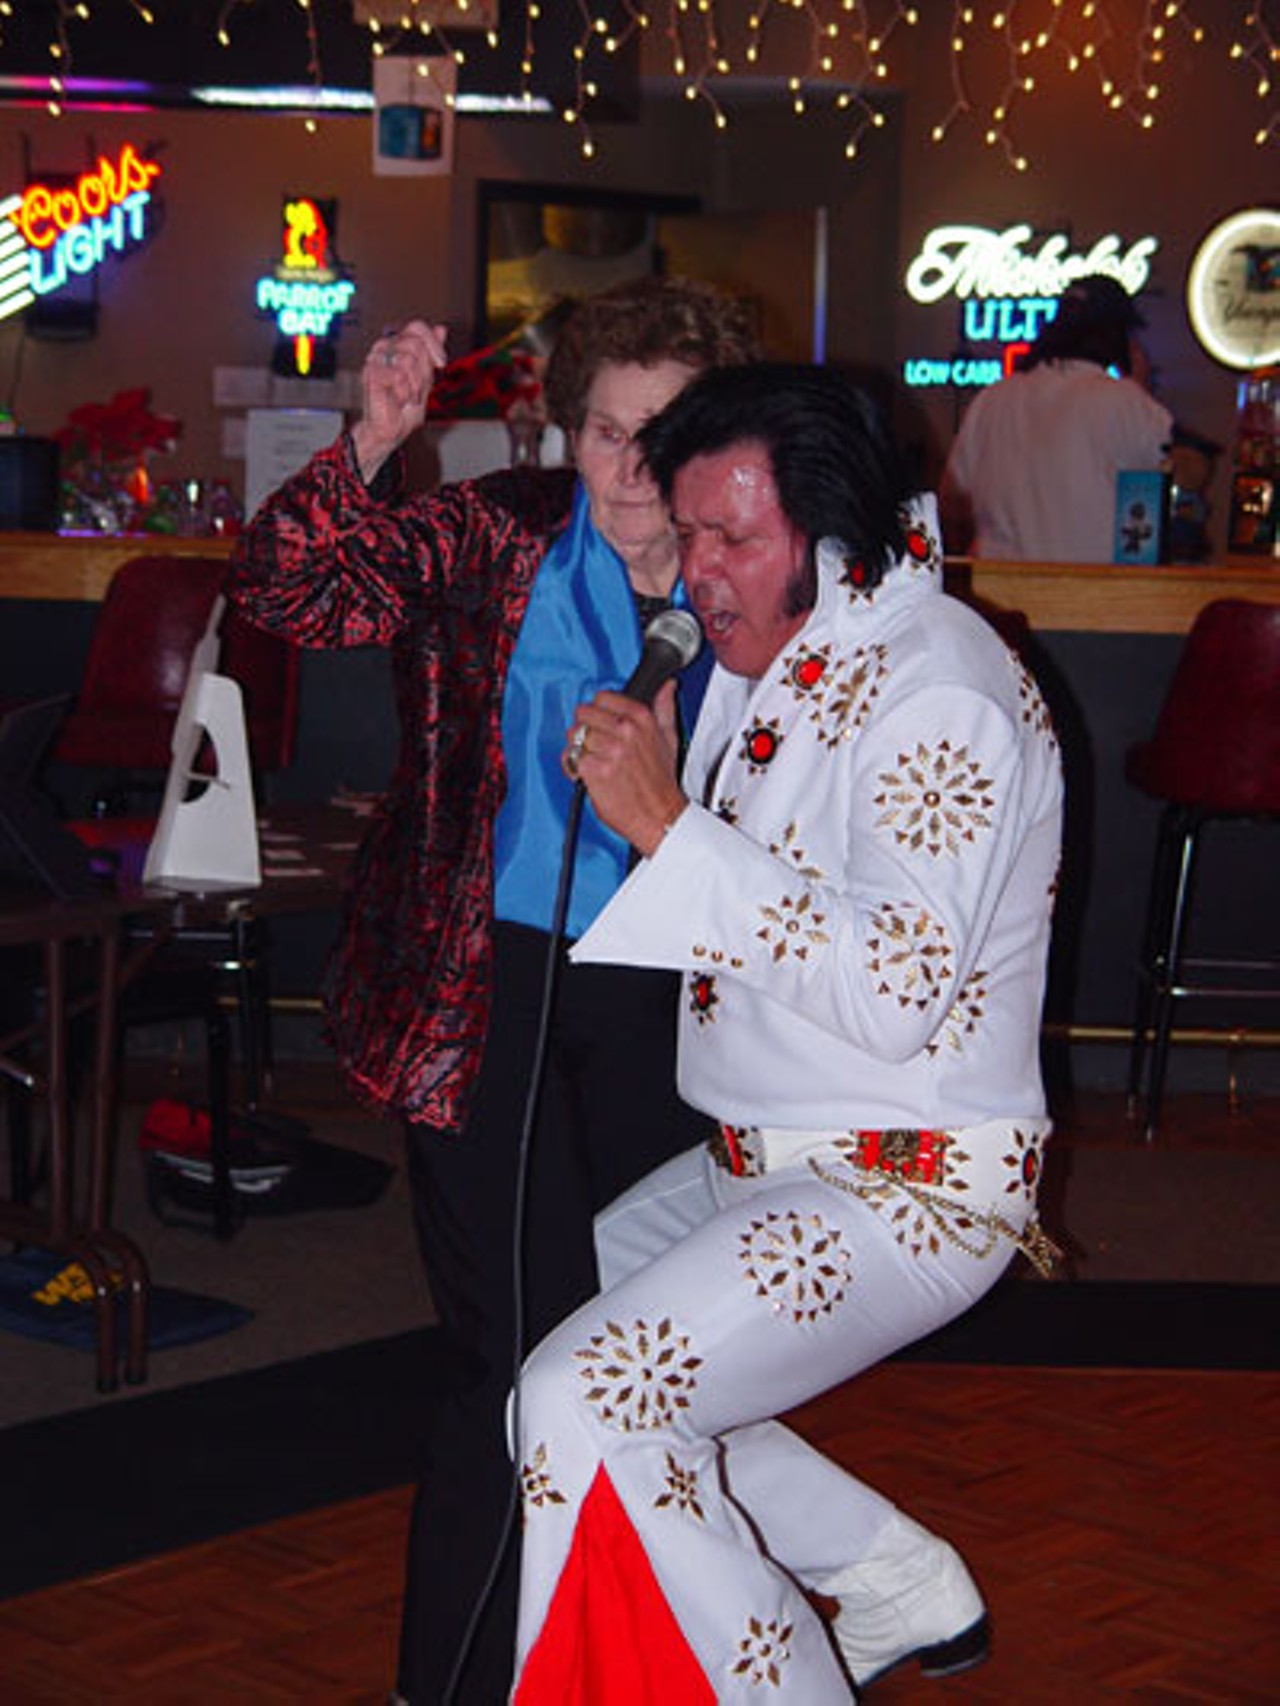 click to enlarge JARED NEUMARK - James Haas Elvis with Wild Woman.  sc 1 st  Creative Loafing Charlotte & Elvis is Everywhere | Urban Explorer | Creative Loafing Charlotte